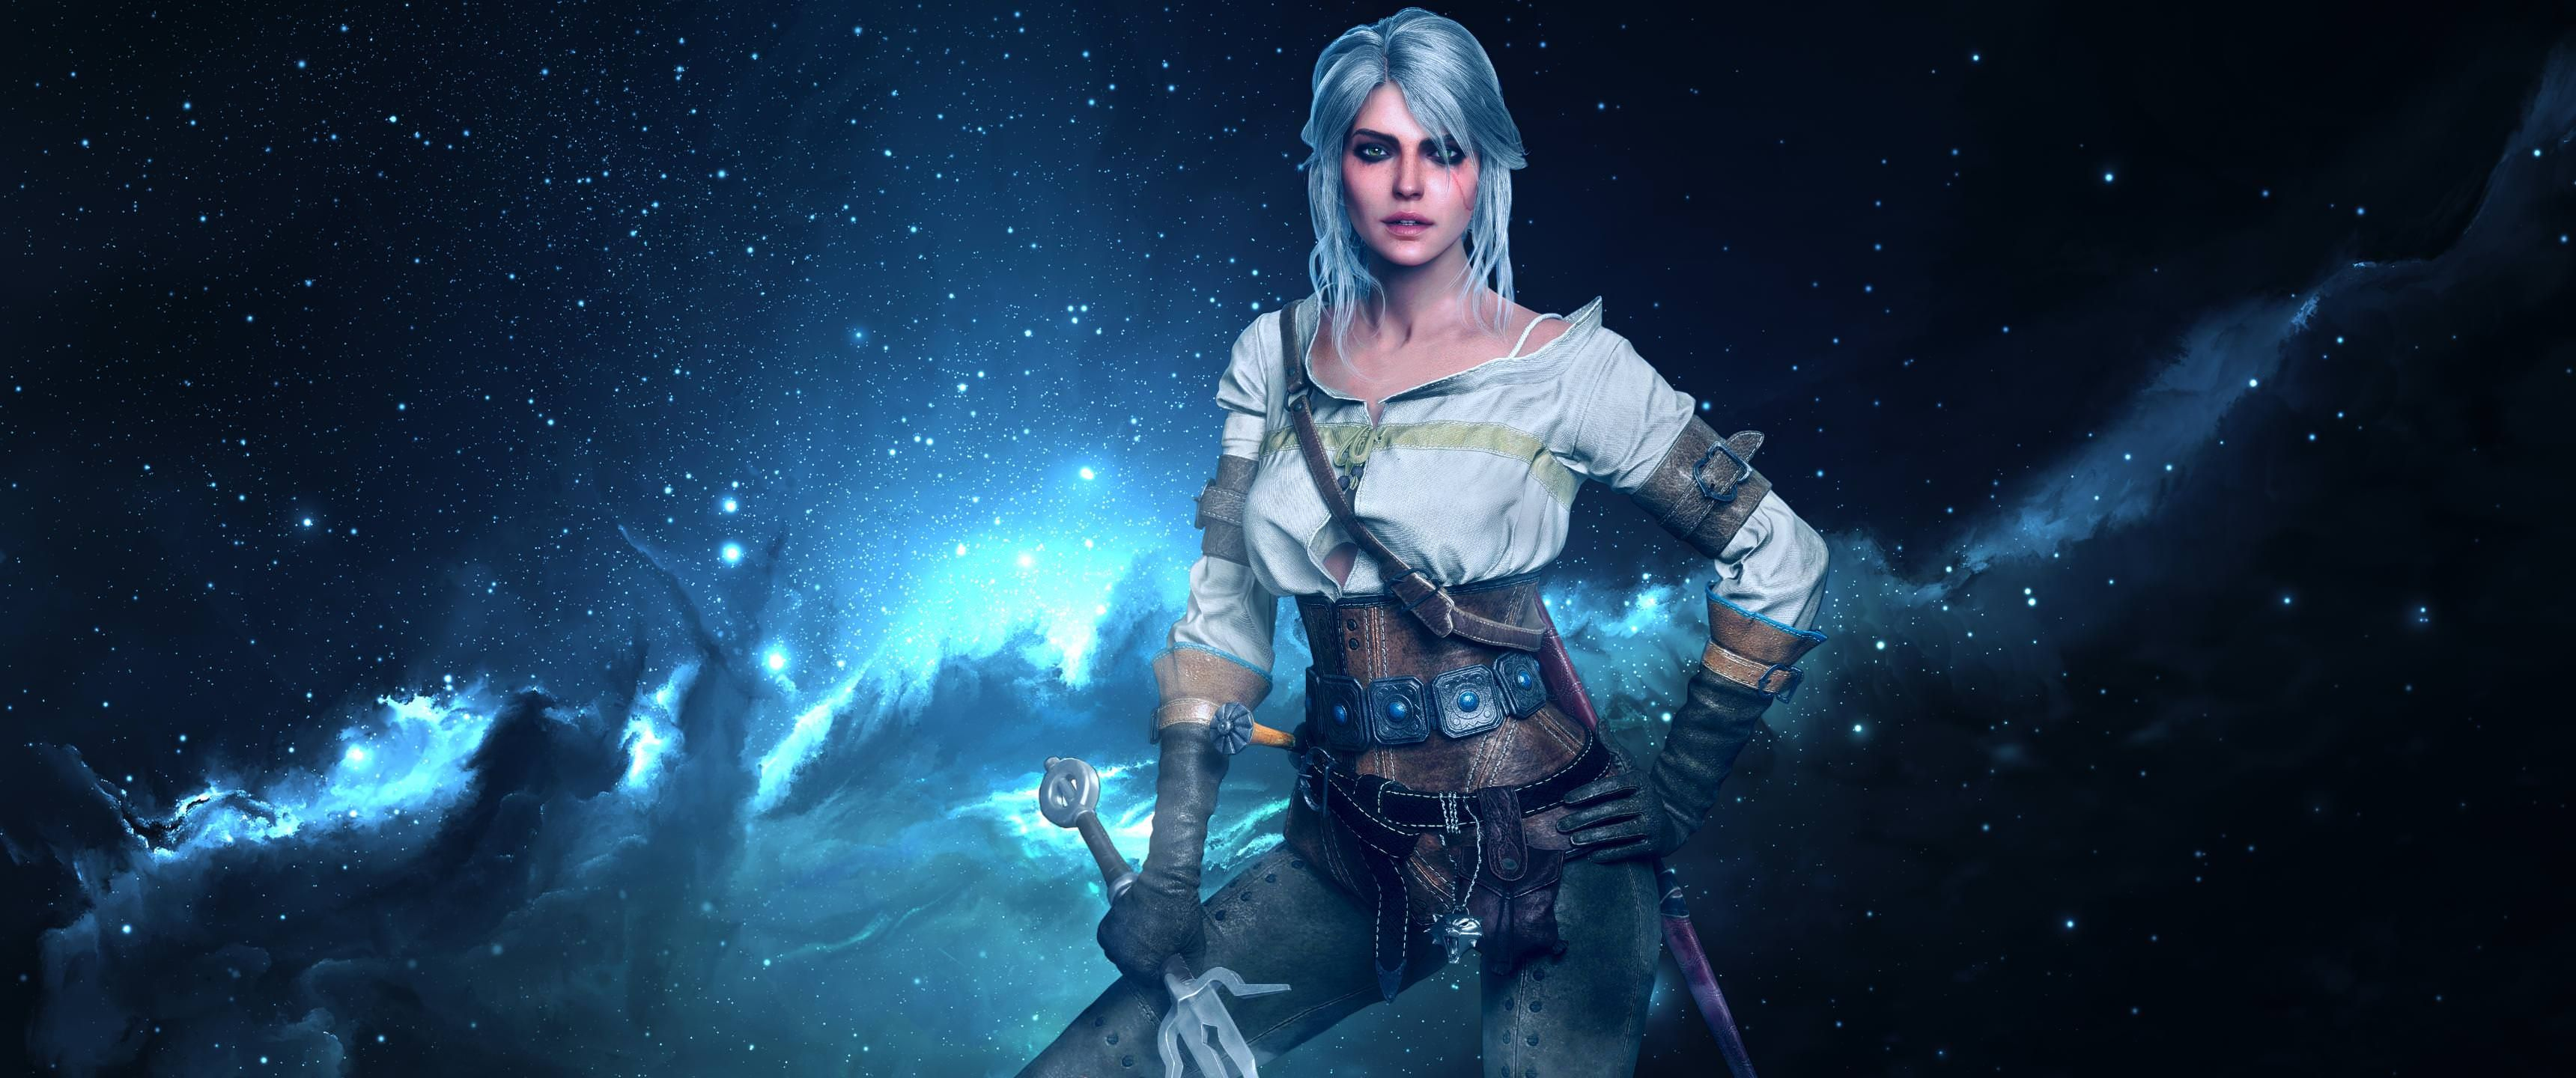 Cirilla another world Wallpaper [3440x1440] TheWitcher3